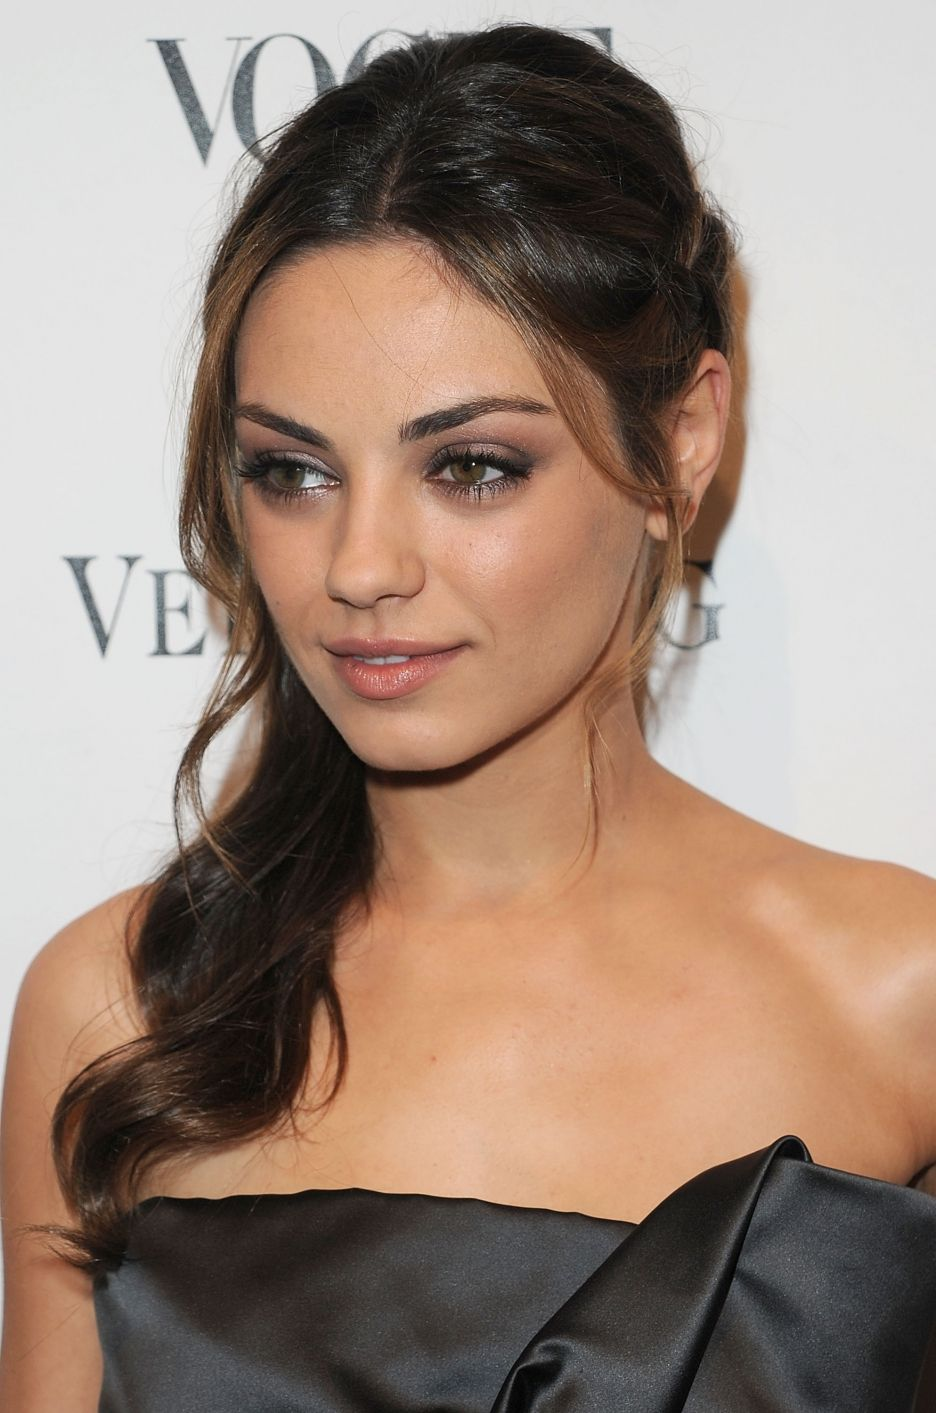 Check Mila Kuniss Latest Hairstyles Here In This Page And Read The Article About Her Style